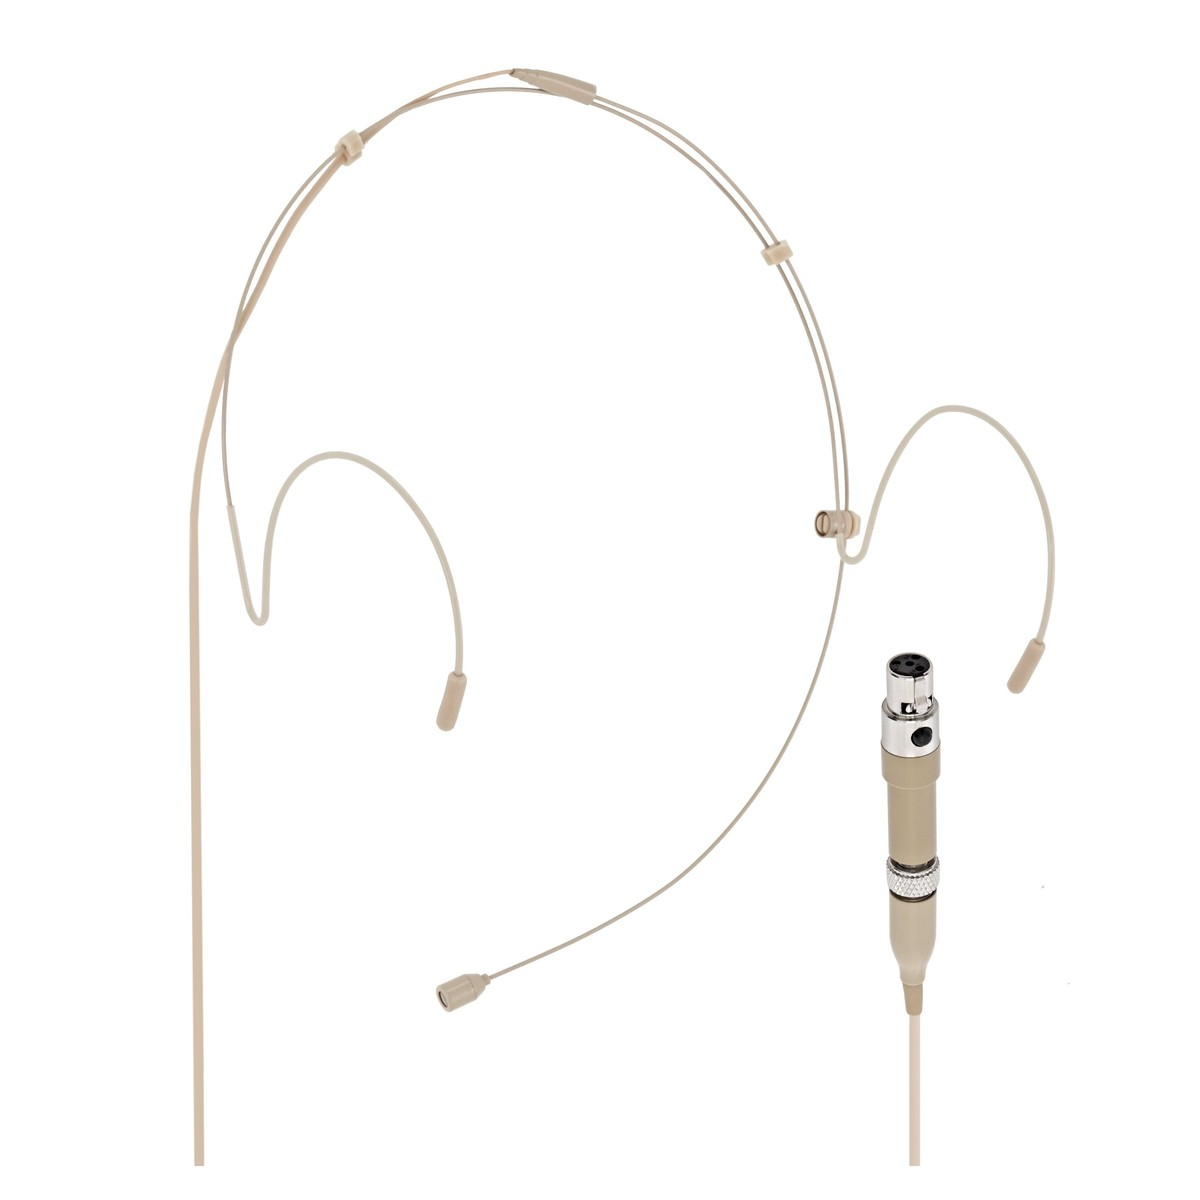 Subzero Headset Microphone With Shure Style Connector Tan At Gear4music